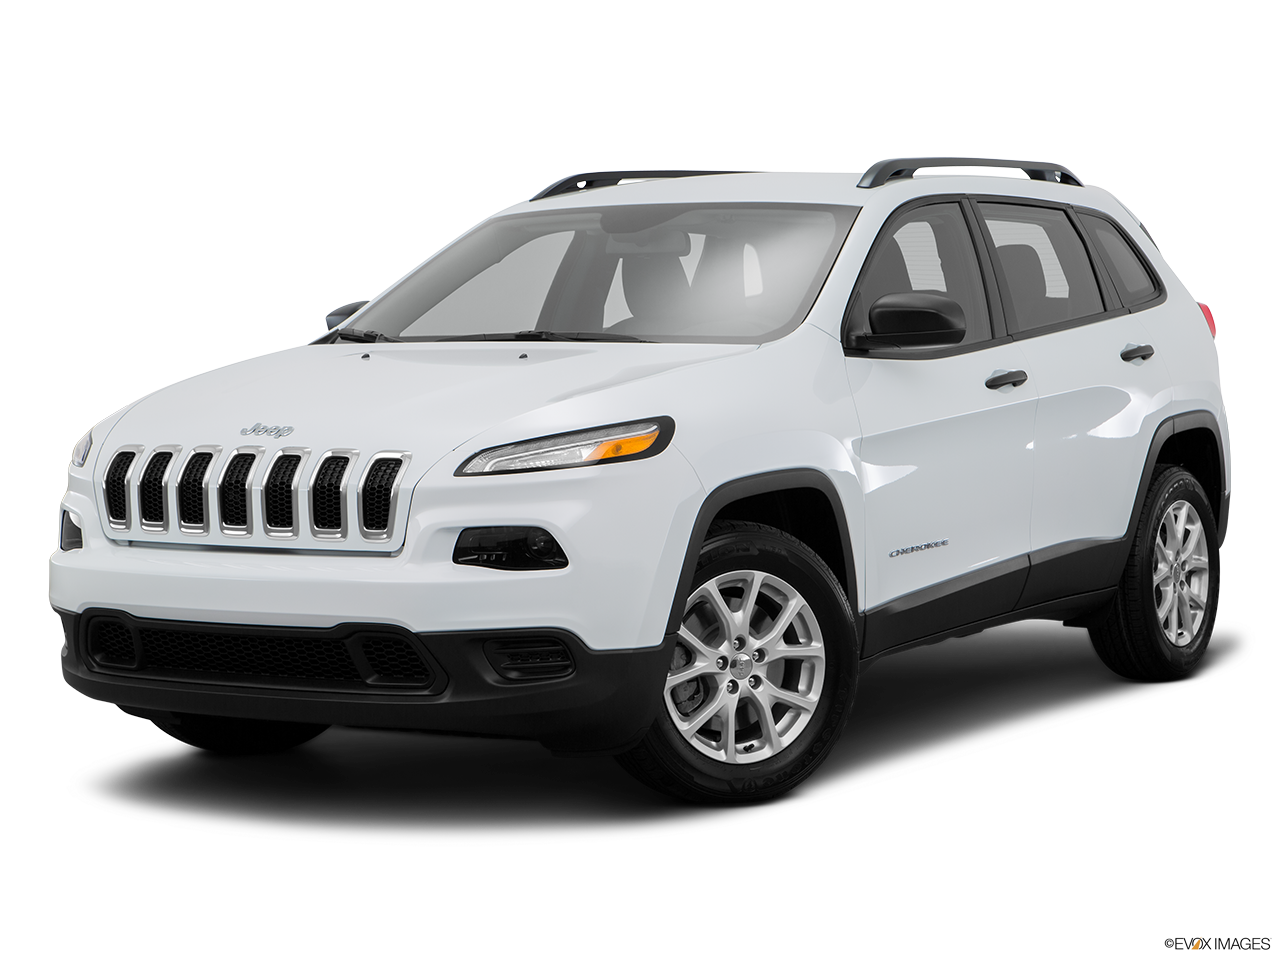 2016 jeep cherokee png. Dealer in riverside